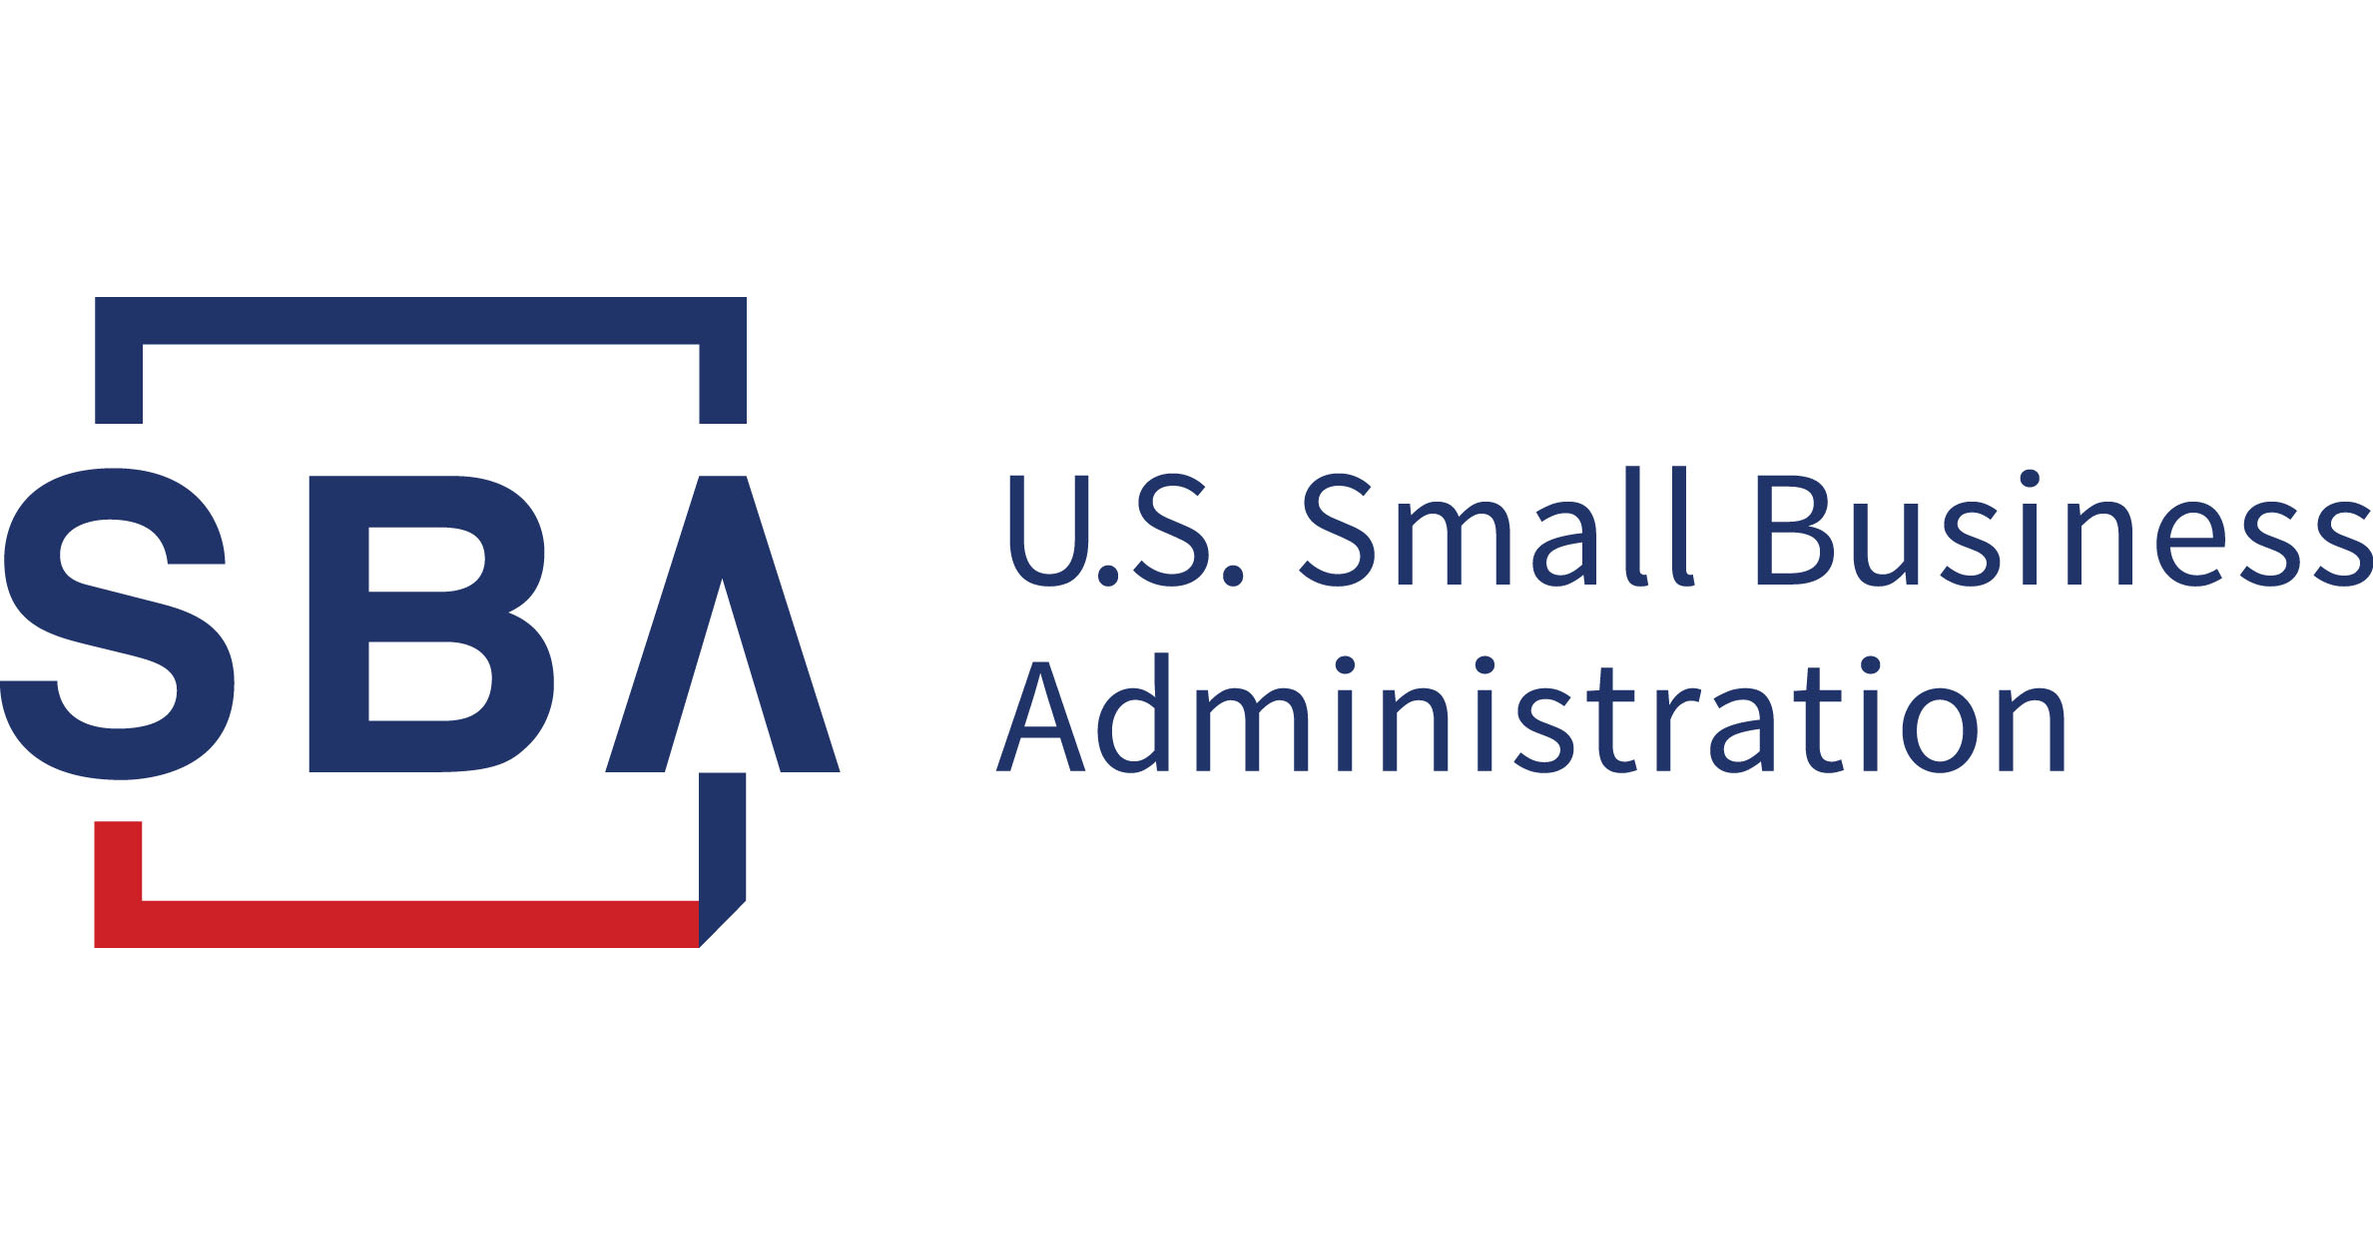 SBA Proposes Rule to Eliminate Regulations that Discriminate Against Religious Applicants for Loans and Disaster Assistance